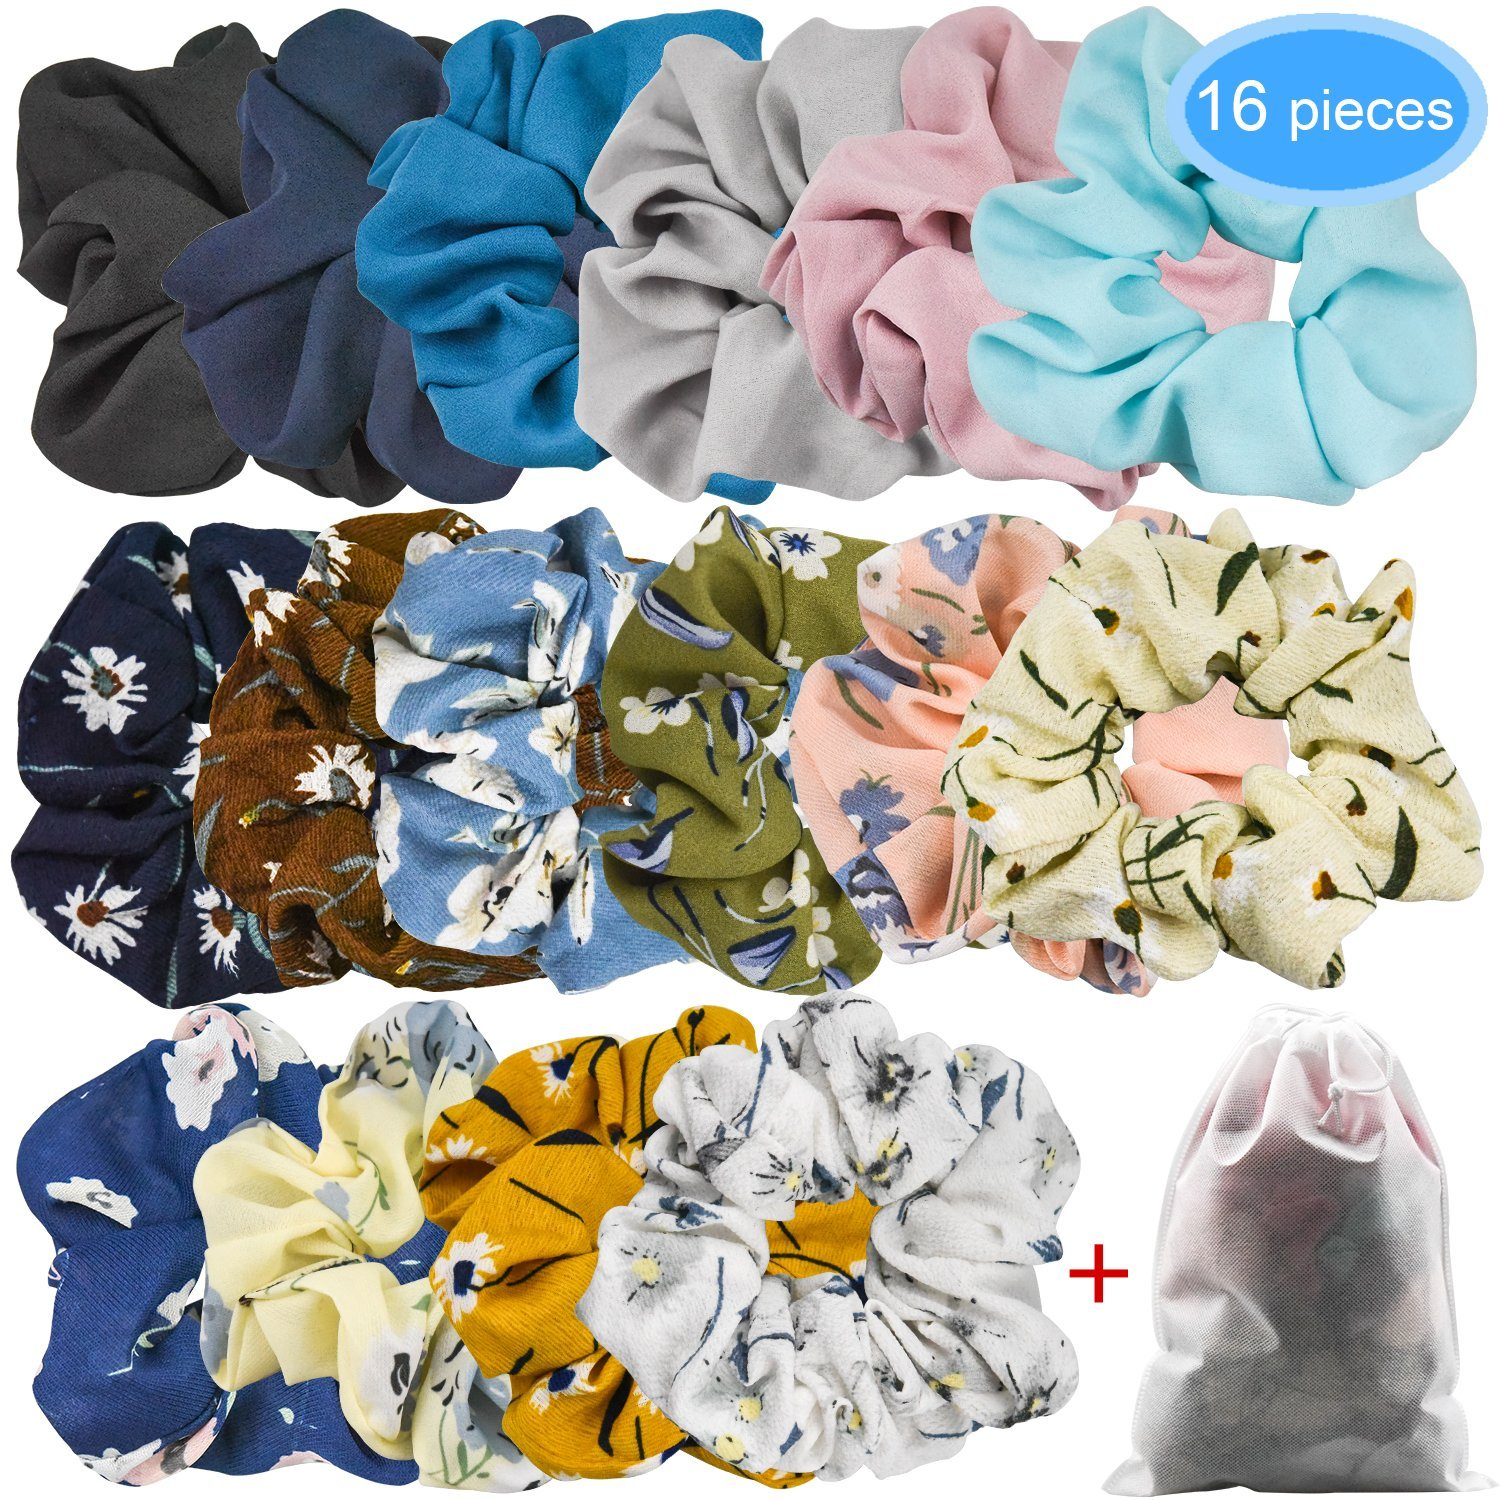 EAONE 16 Pack Chiffon Scrunchies Hair Flower Ponytail Holder Soft Colorful Scrunchy Bobble Hair Bands Ties, 10 Colors Chiffon Flower Scrunchies 6 Solid Colors Chiffon with Pouch Bag